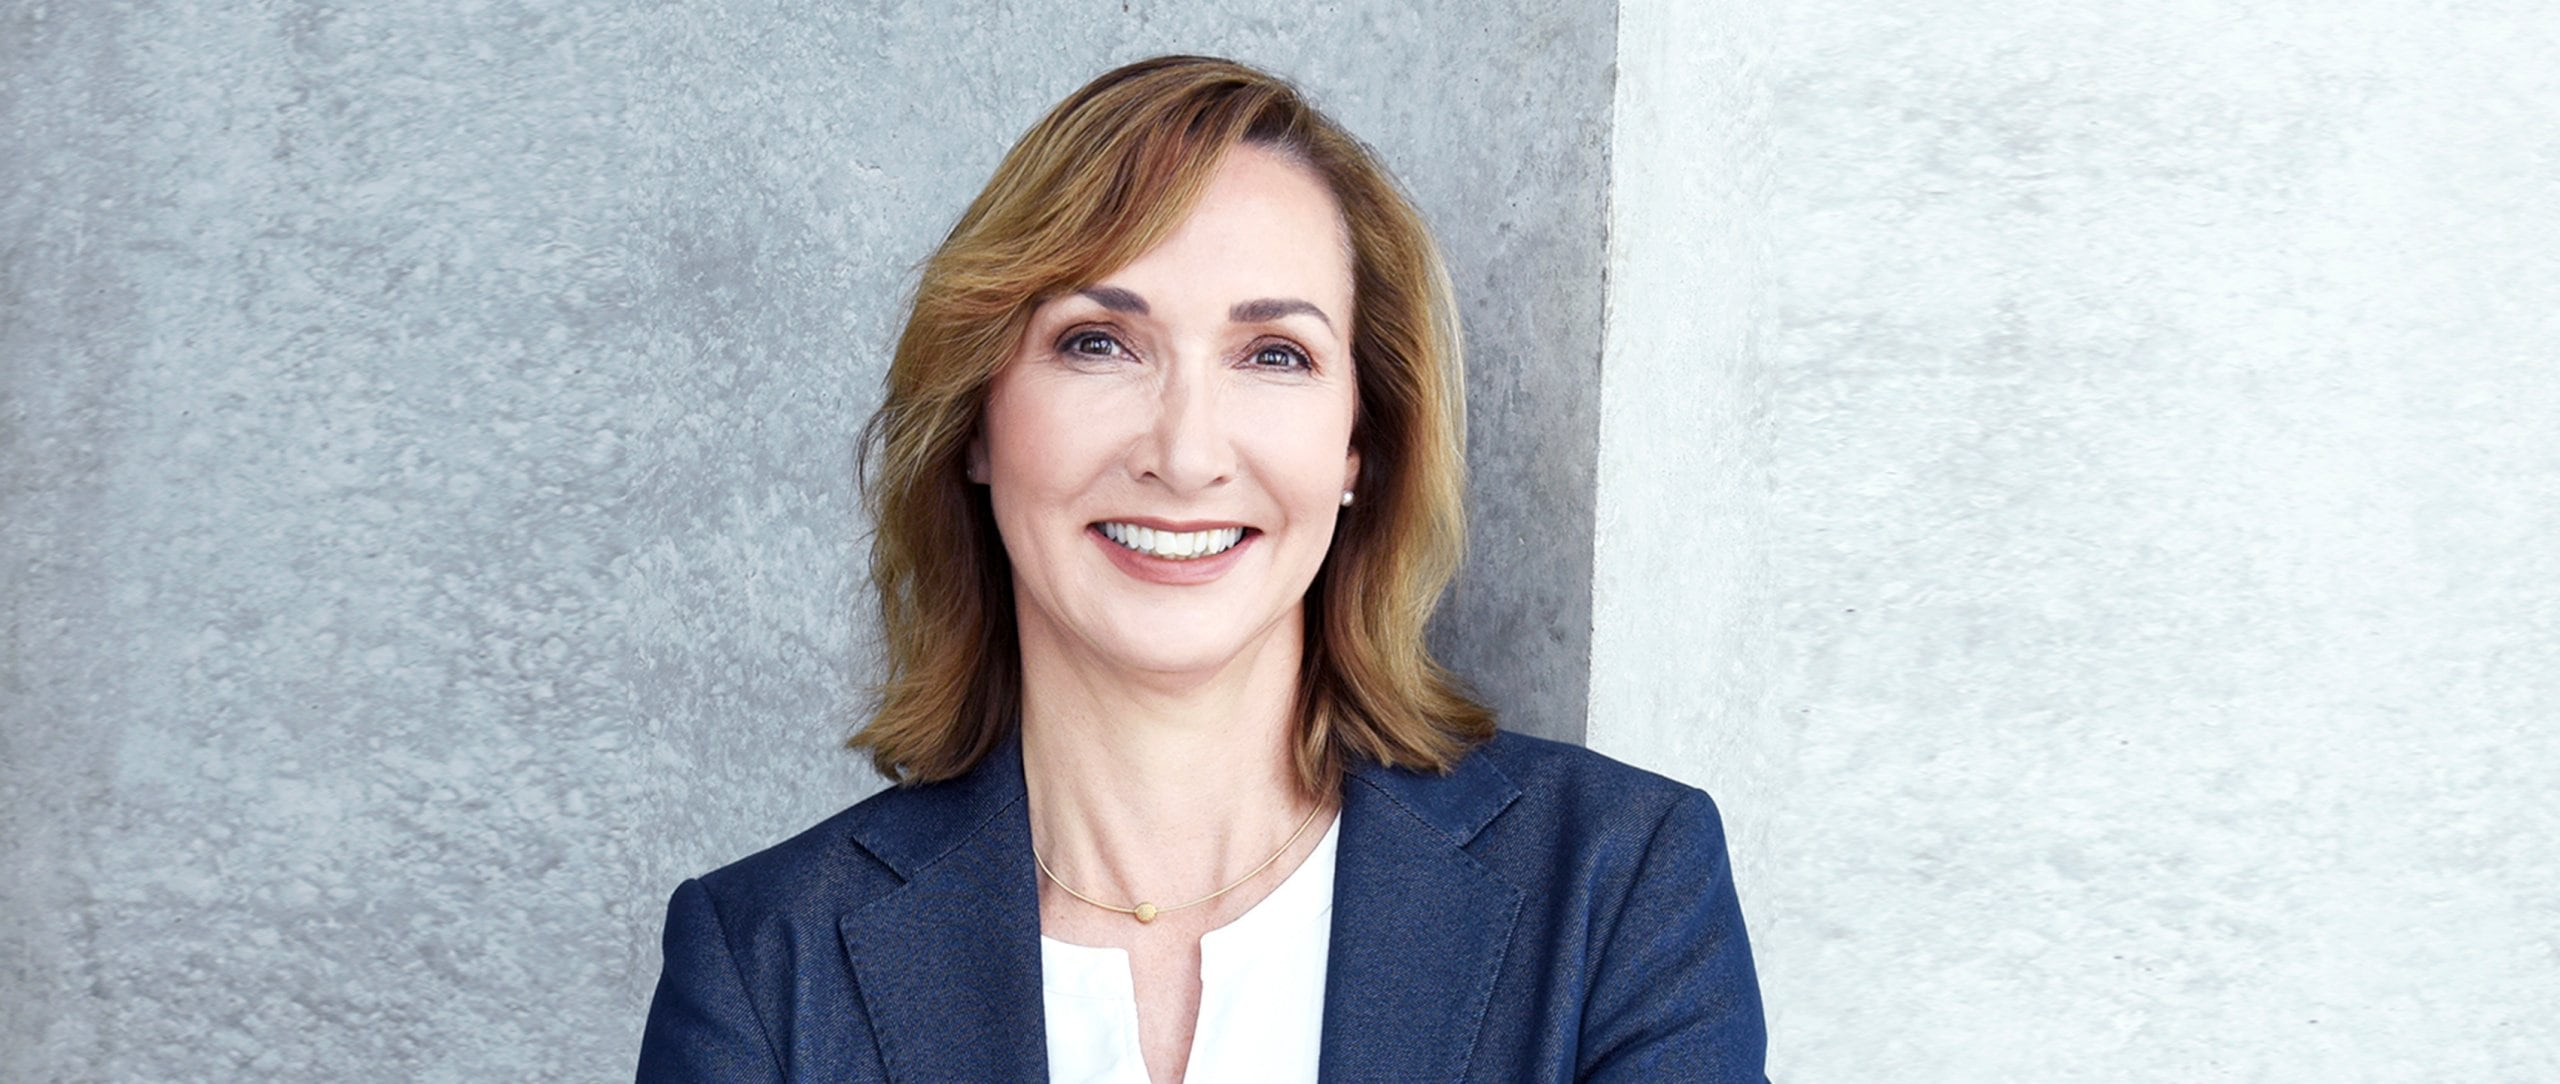 Renata Jungo Brüngger, Member of the Board of Management of Mercedes-Benz AG. Integrity and Legal Affairs.